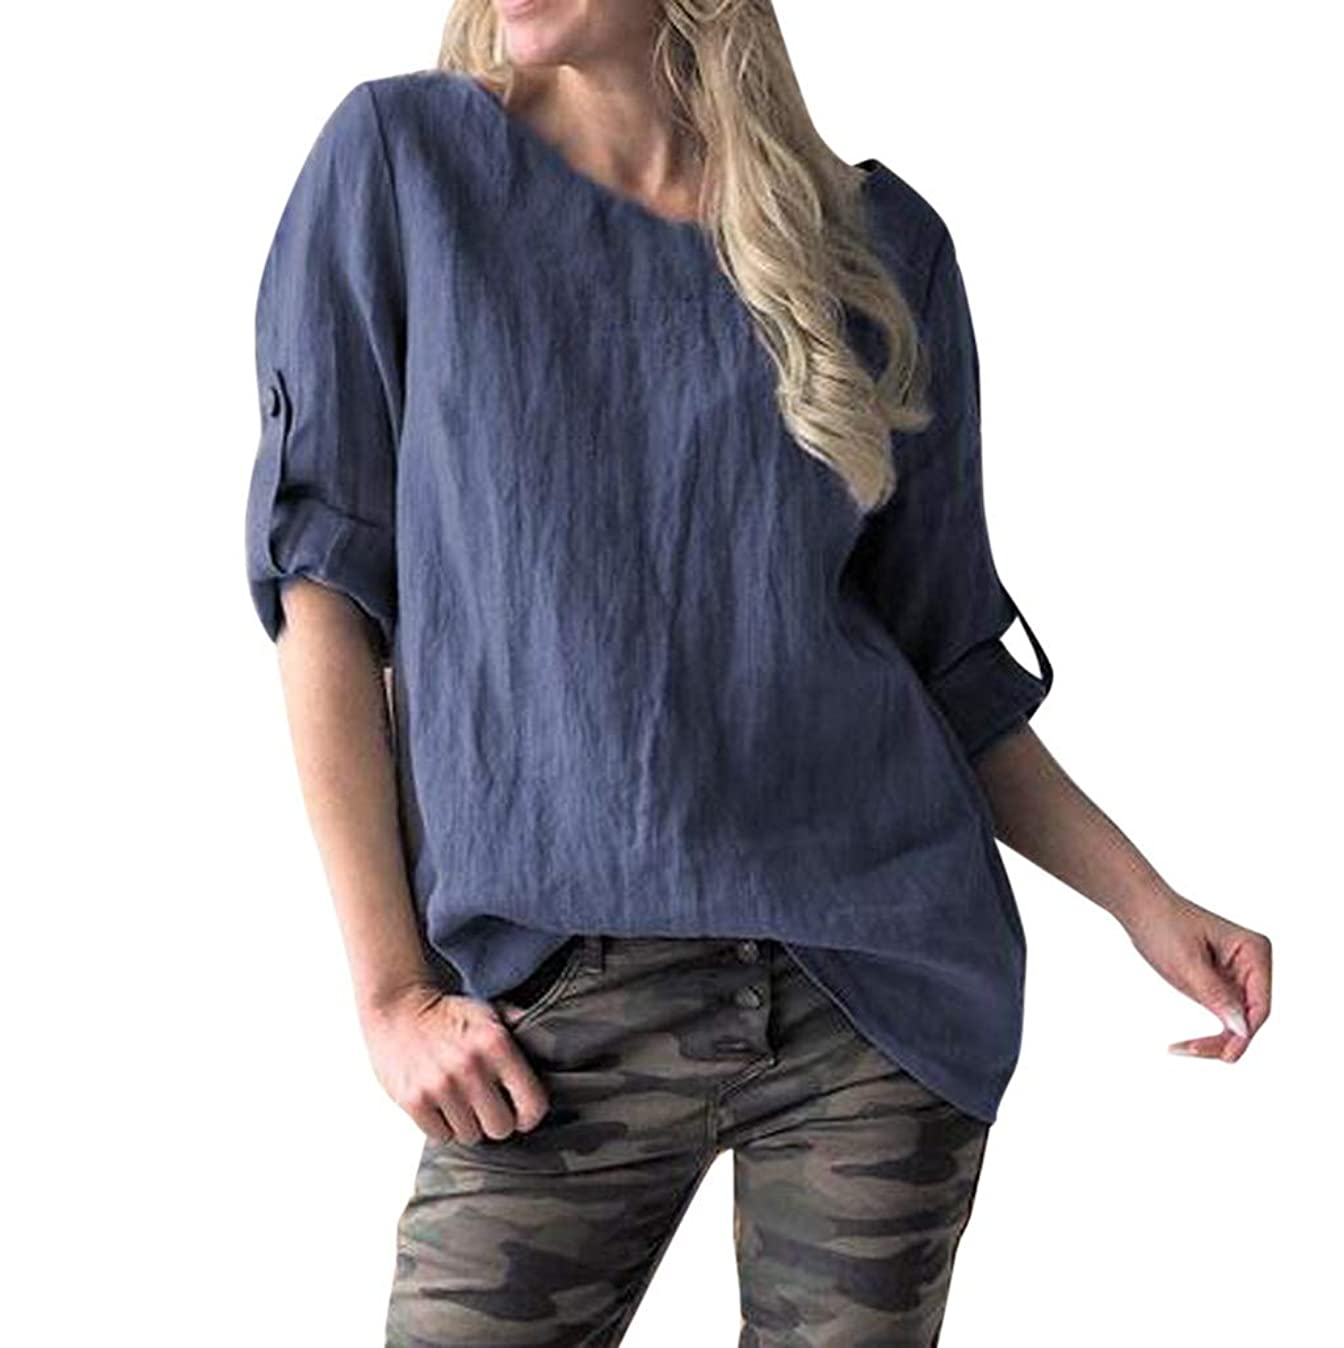 Women's Casual Solid Shirts Plus Size Retro Loose O-Neck Middle Sleeve T-Shirts Top Blouse Summer Spring Tees S-5XL h0506066121